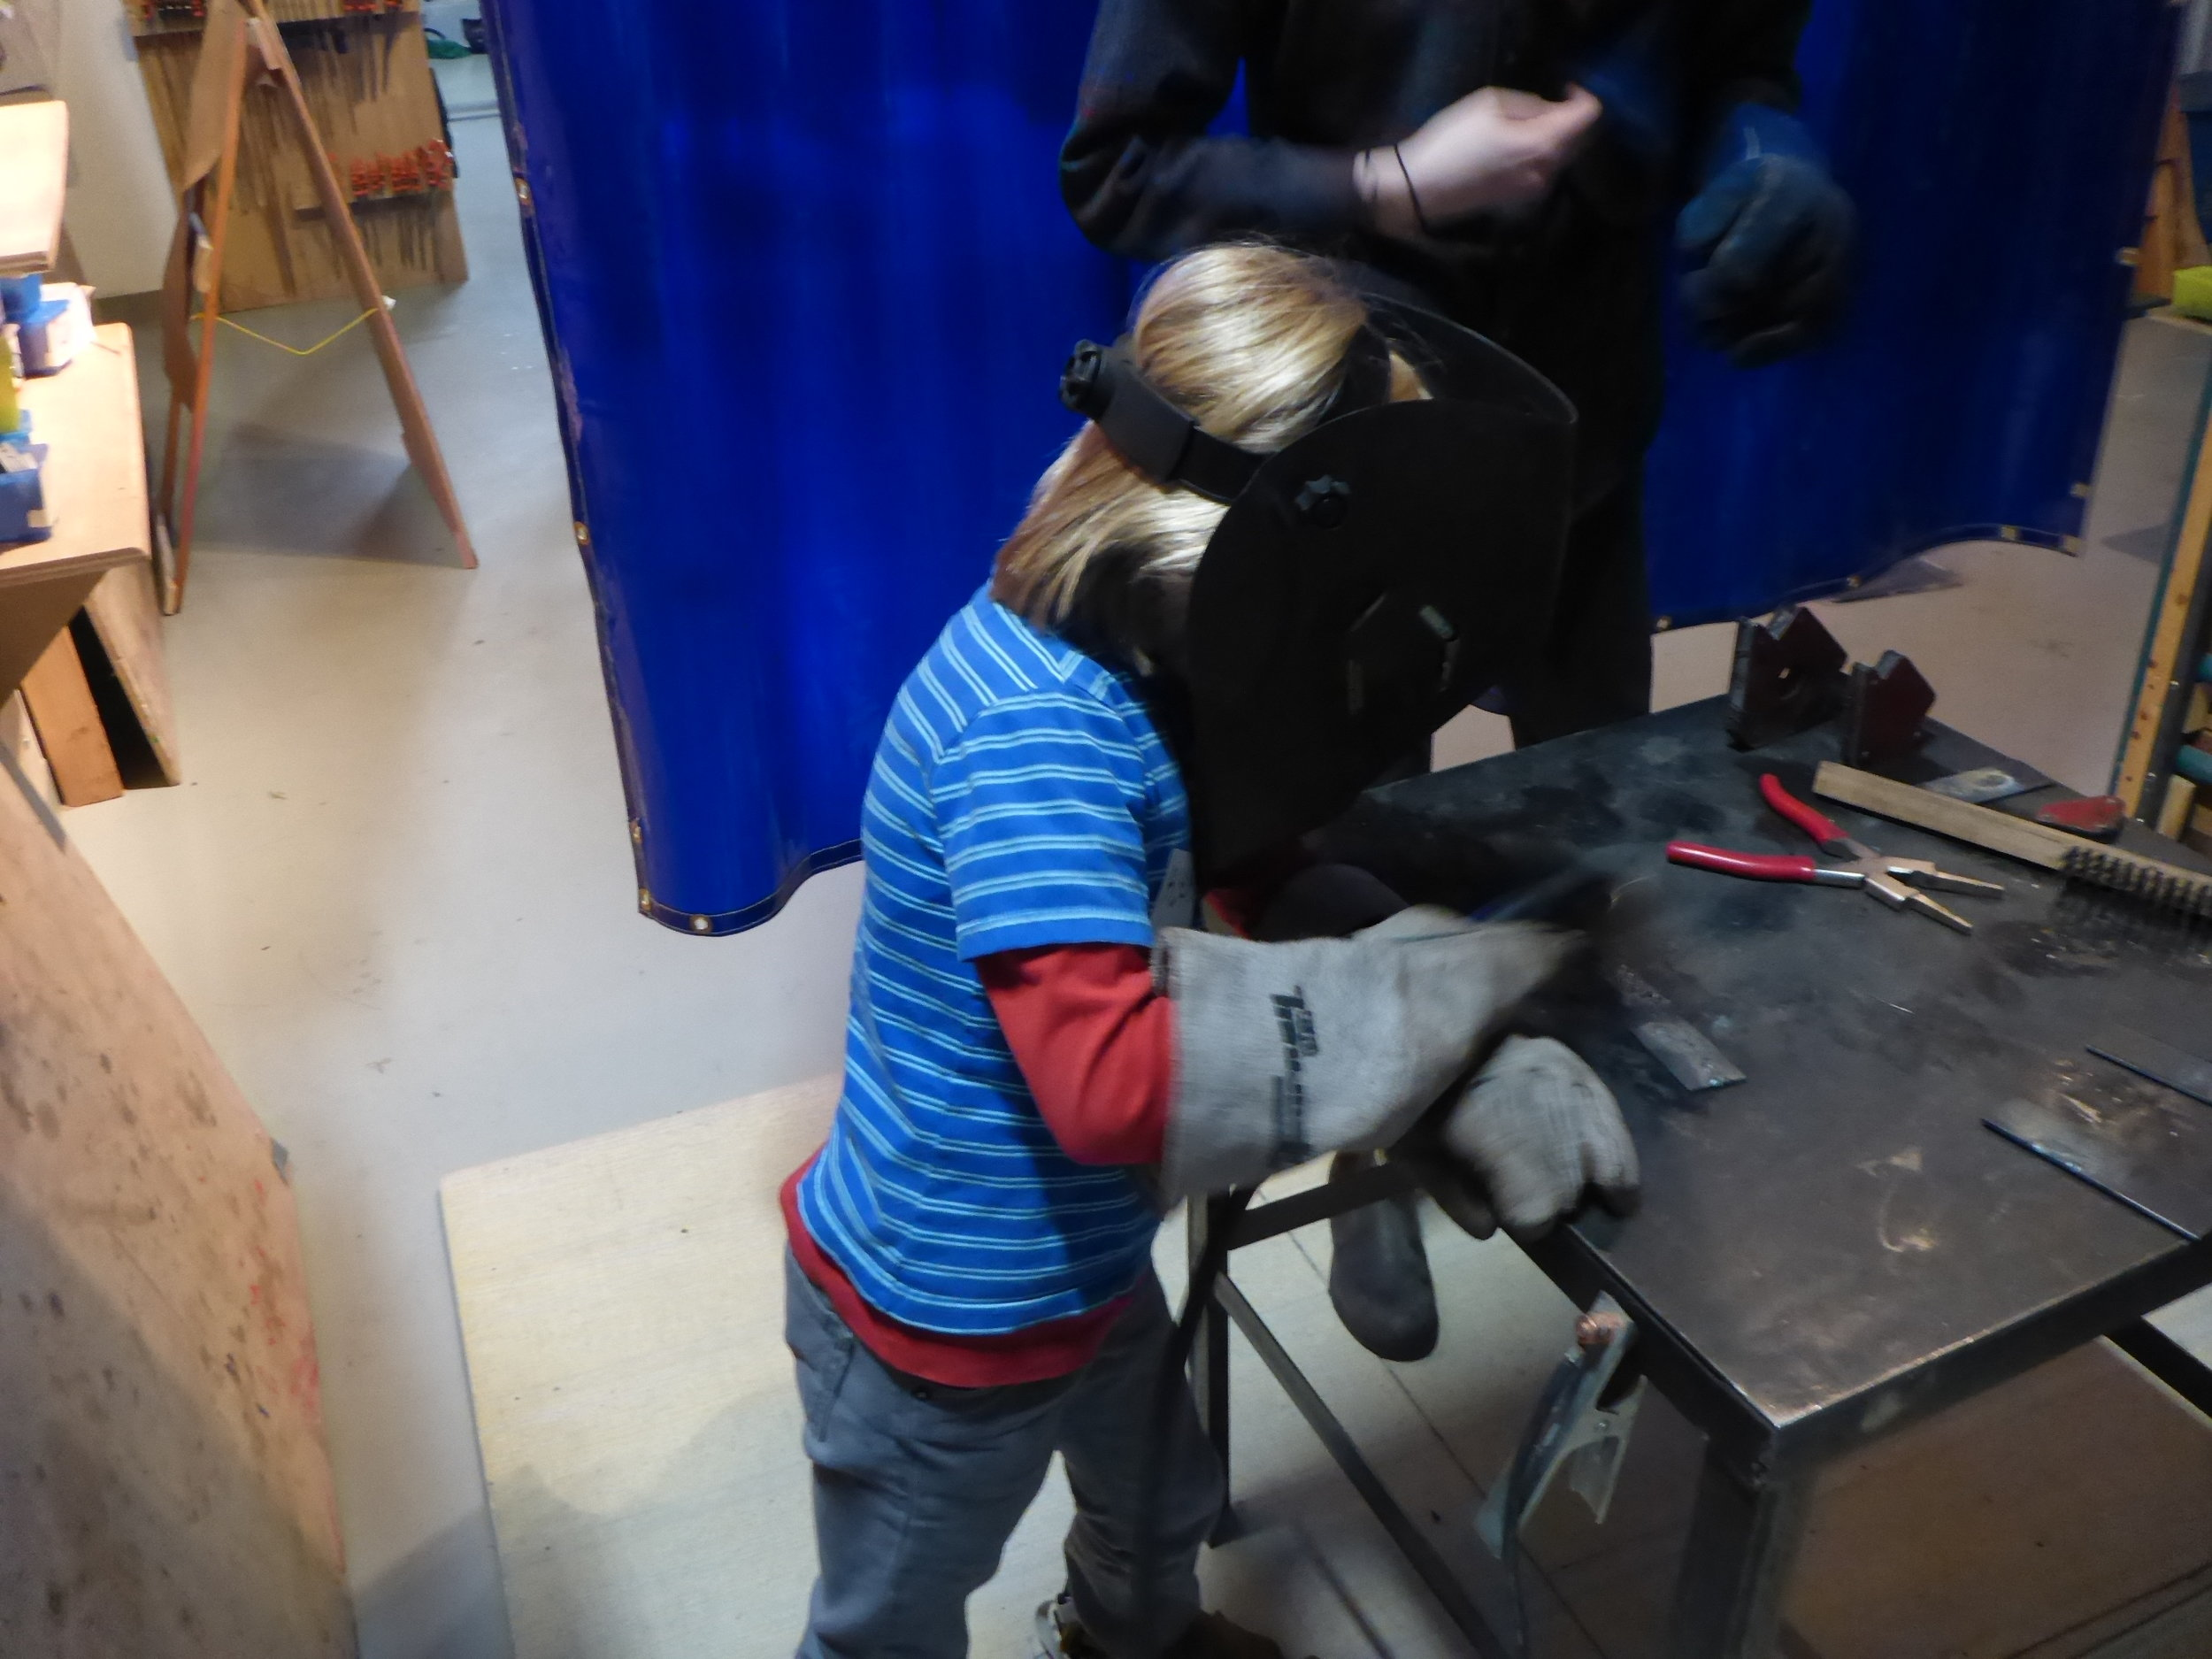 Alex perfecting his 'Ready to Weld' stance.